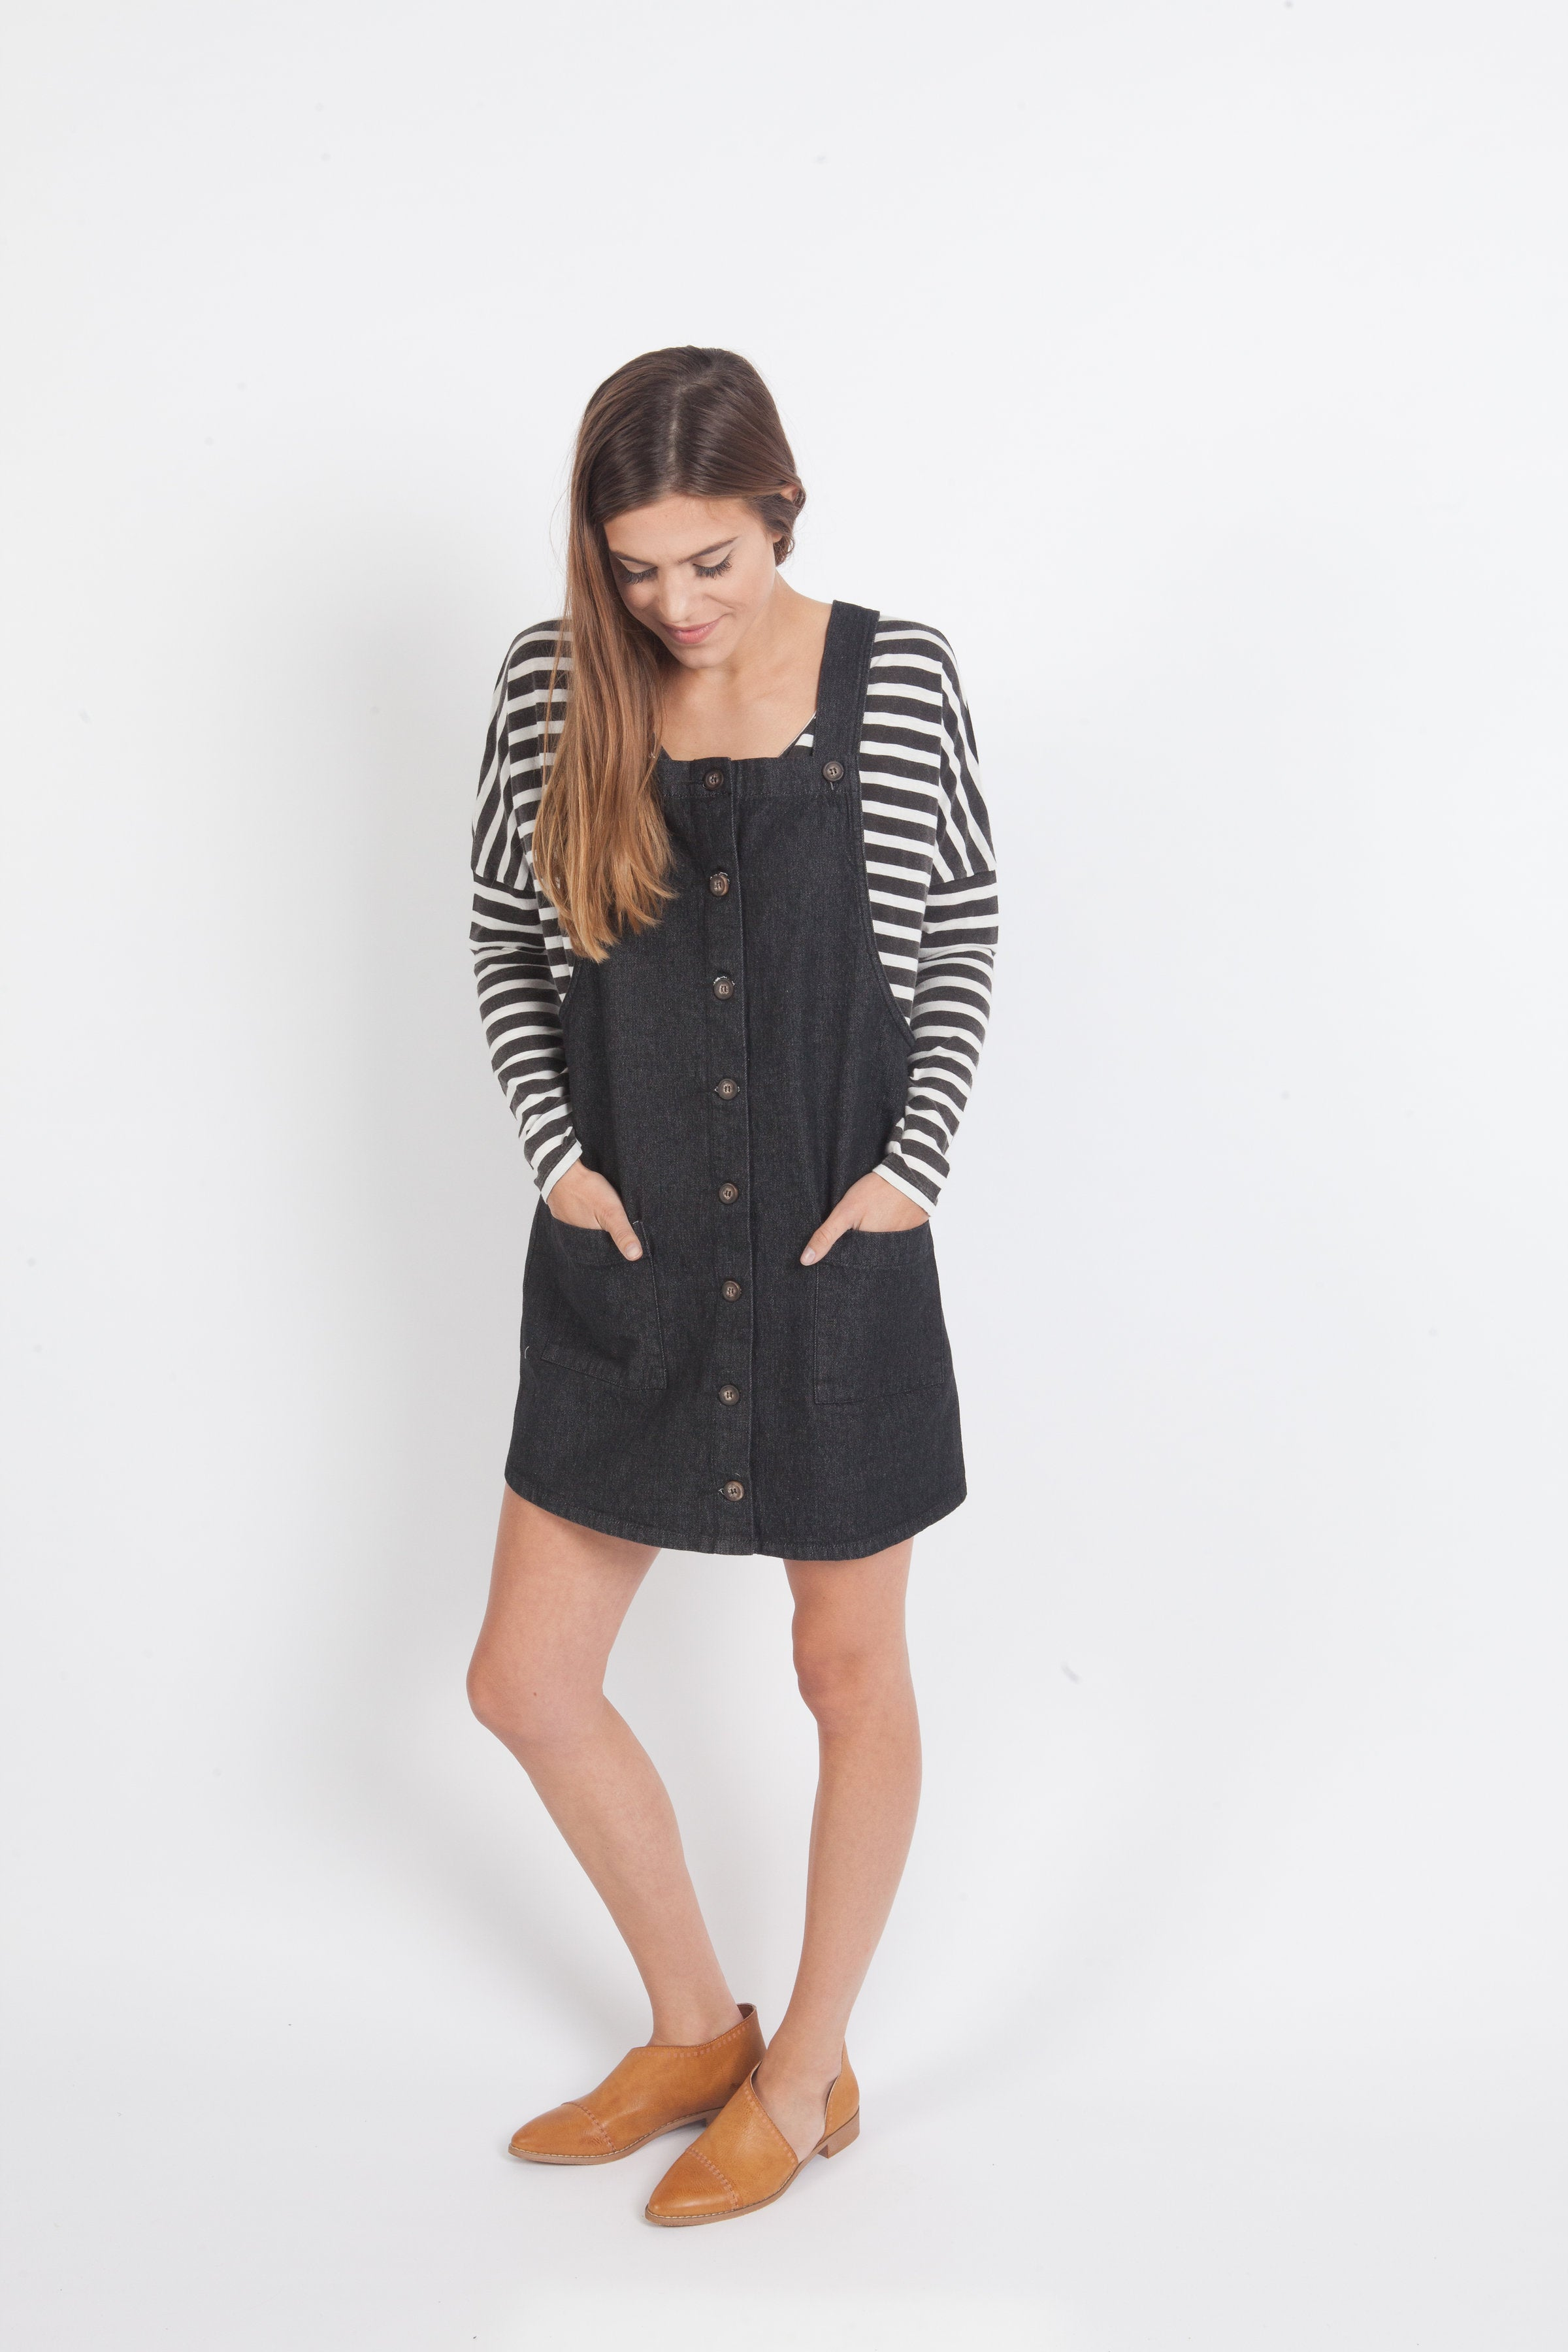 Denim Overall Dress - Black Dresses - Vinnie Louise